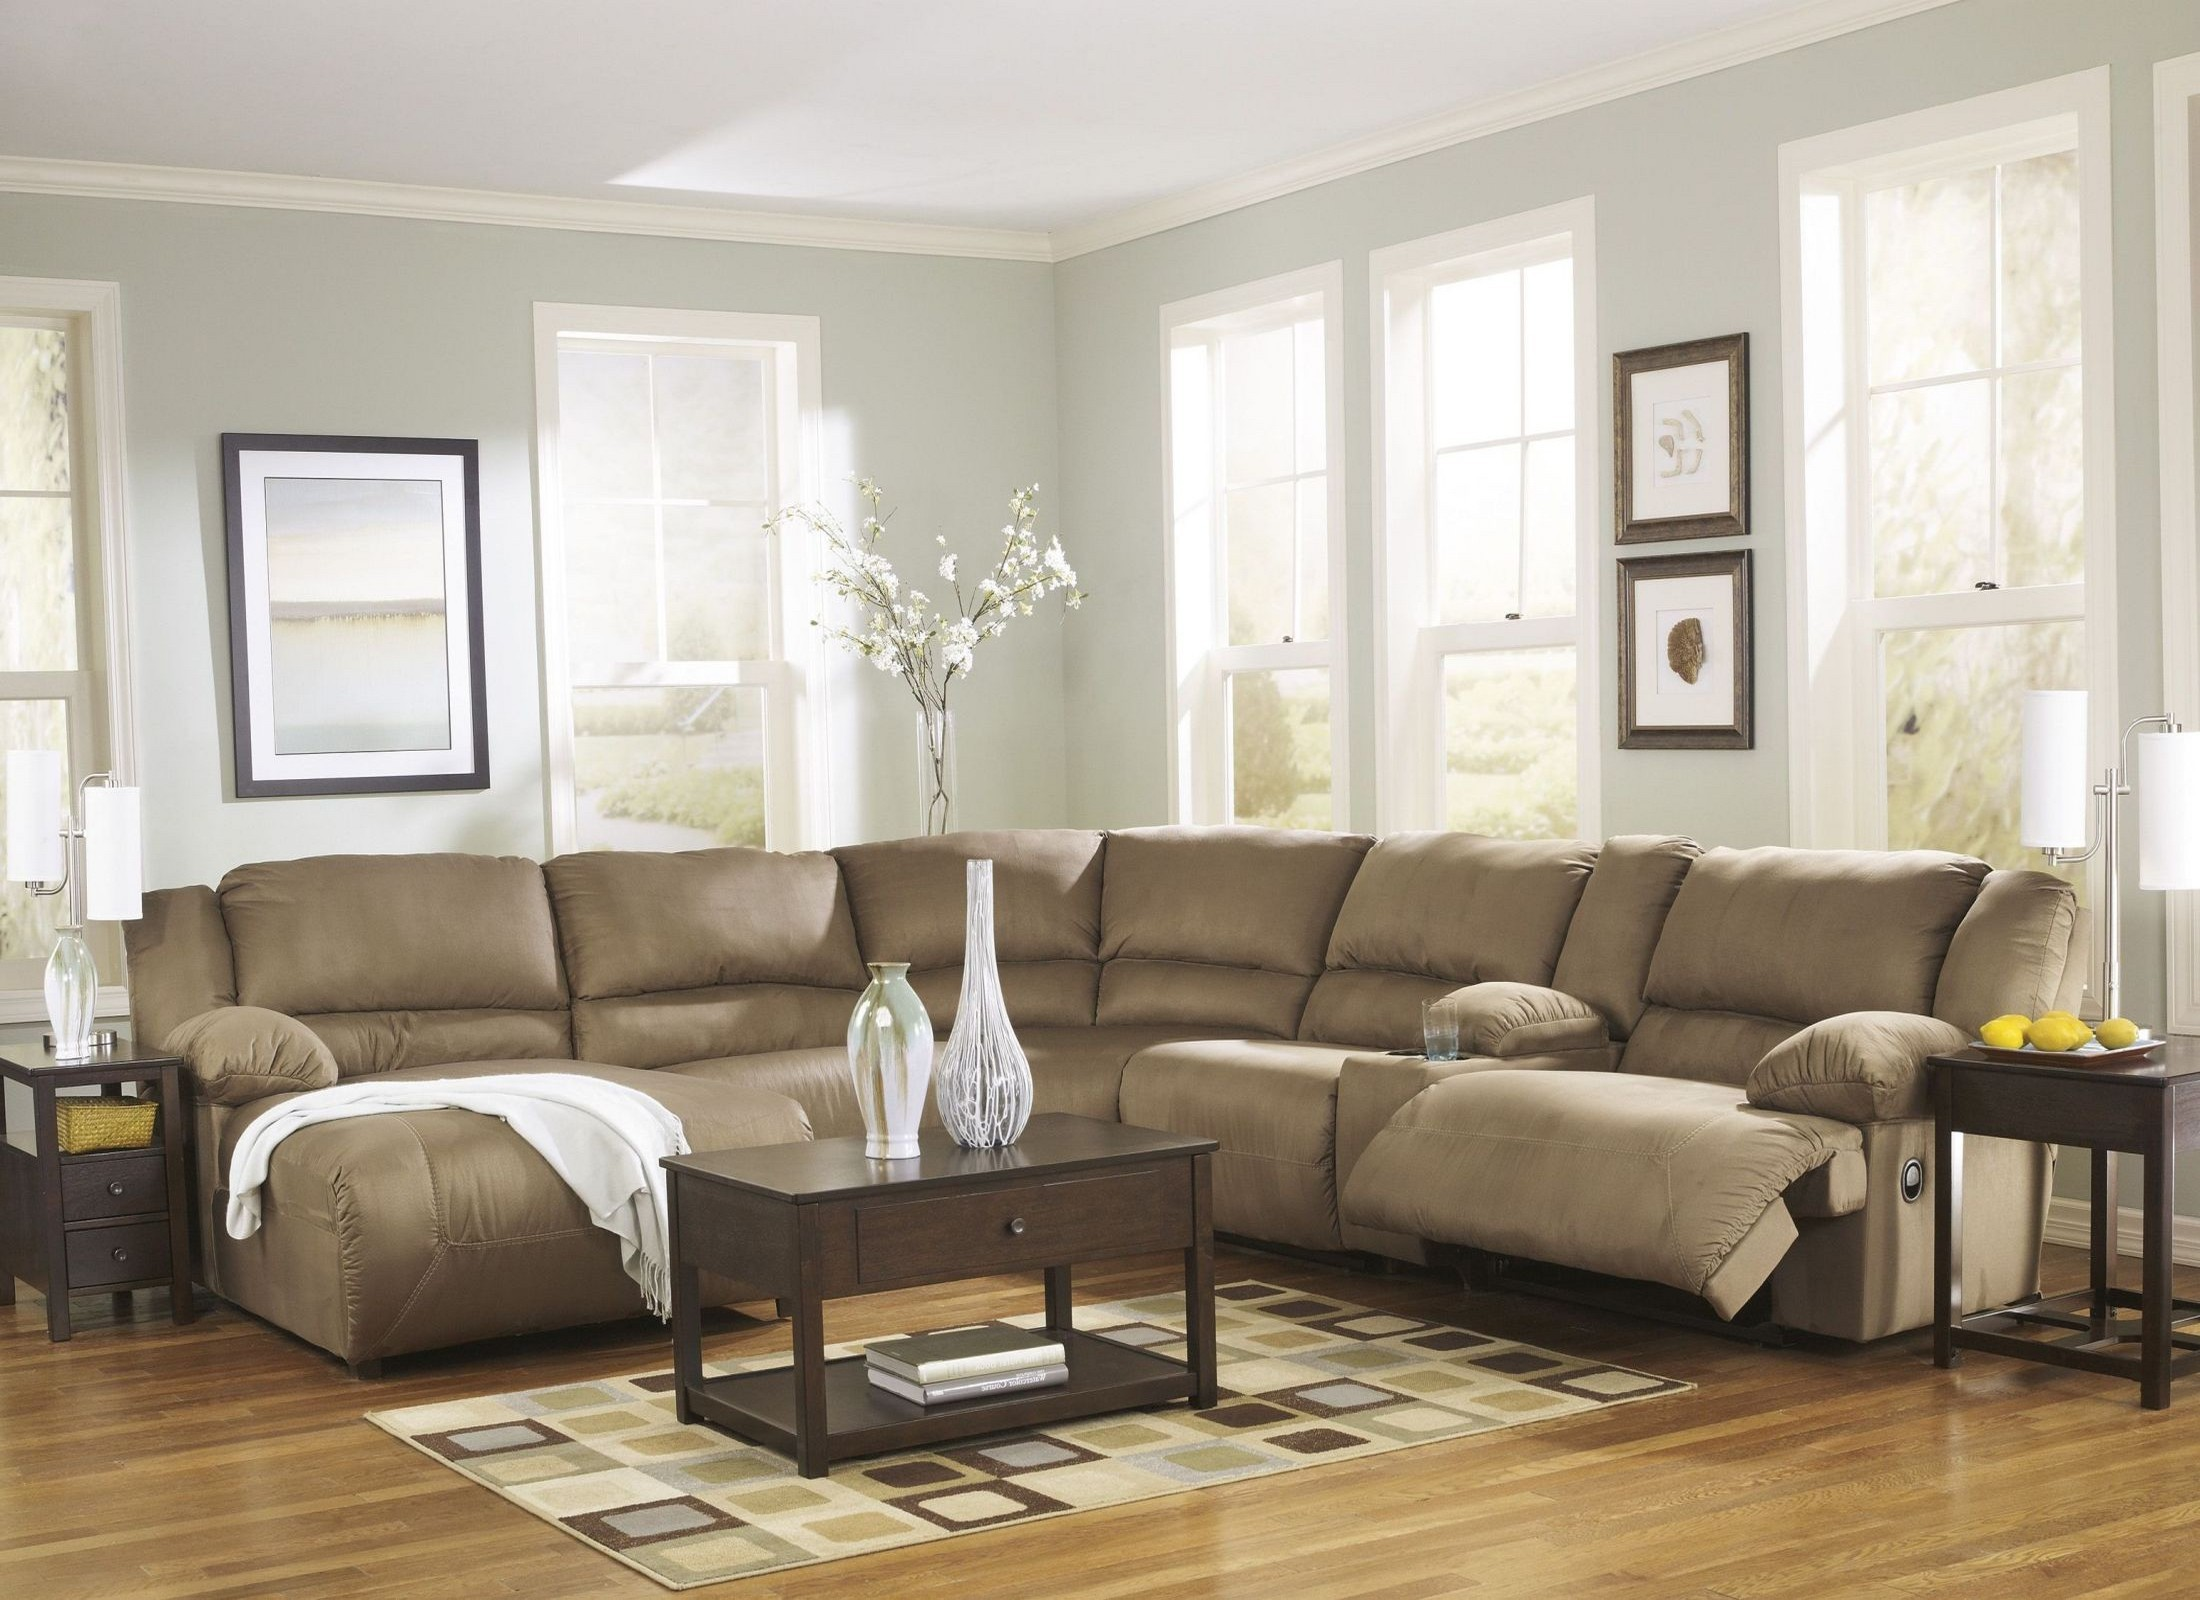 Hogan Mocha Left Chaise Reclining Sectional from Ashley